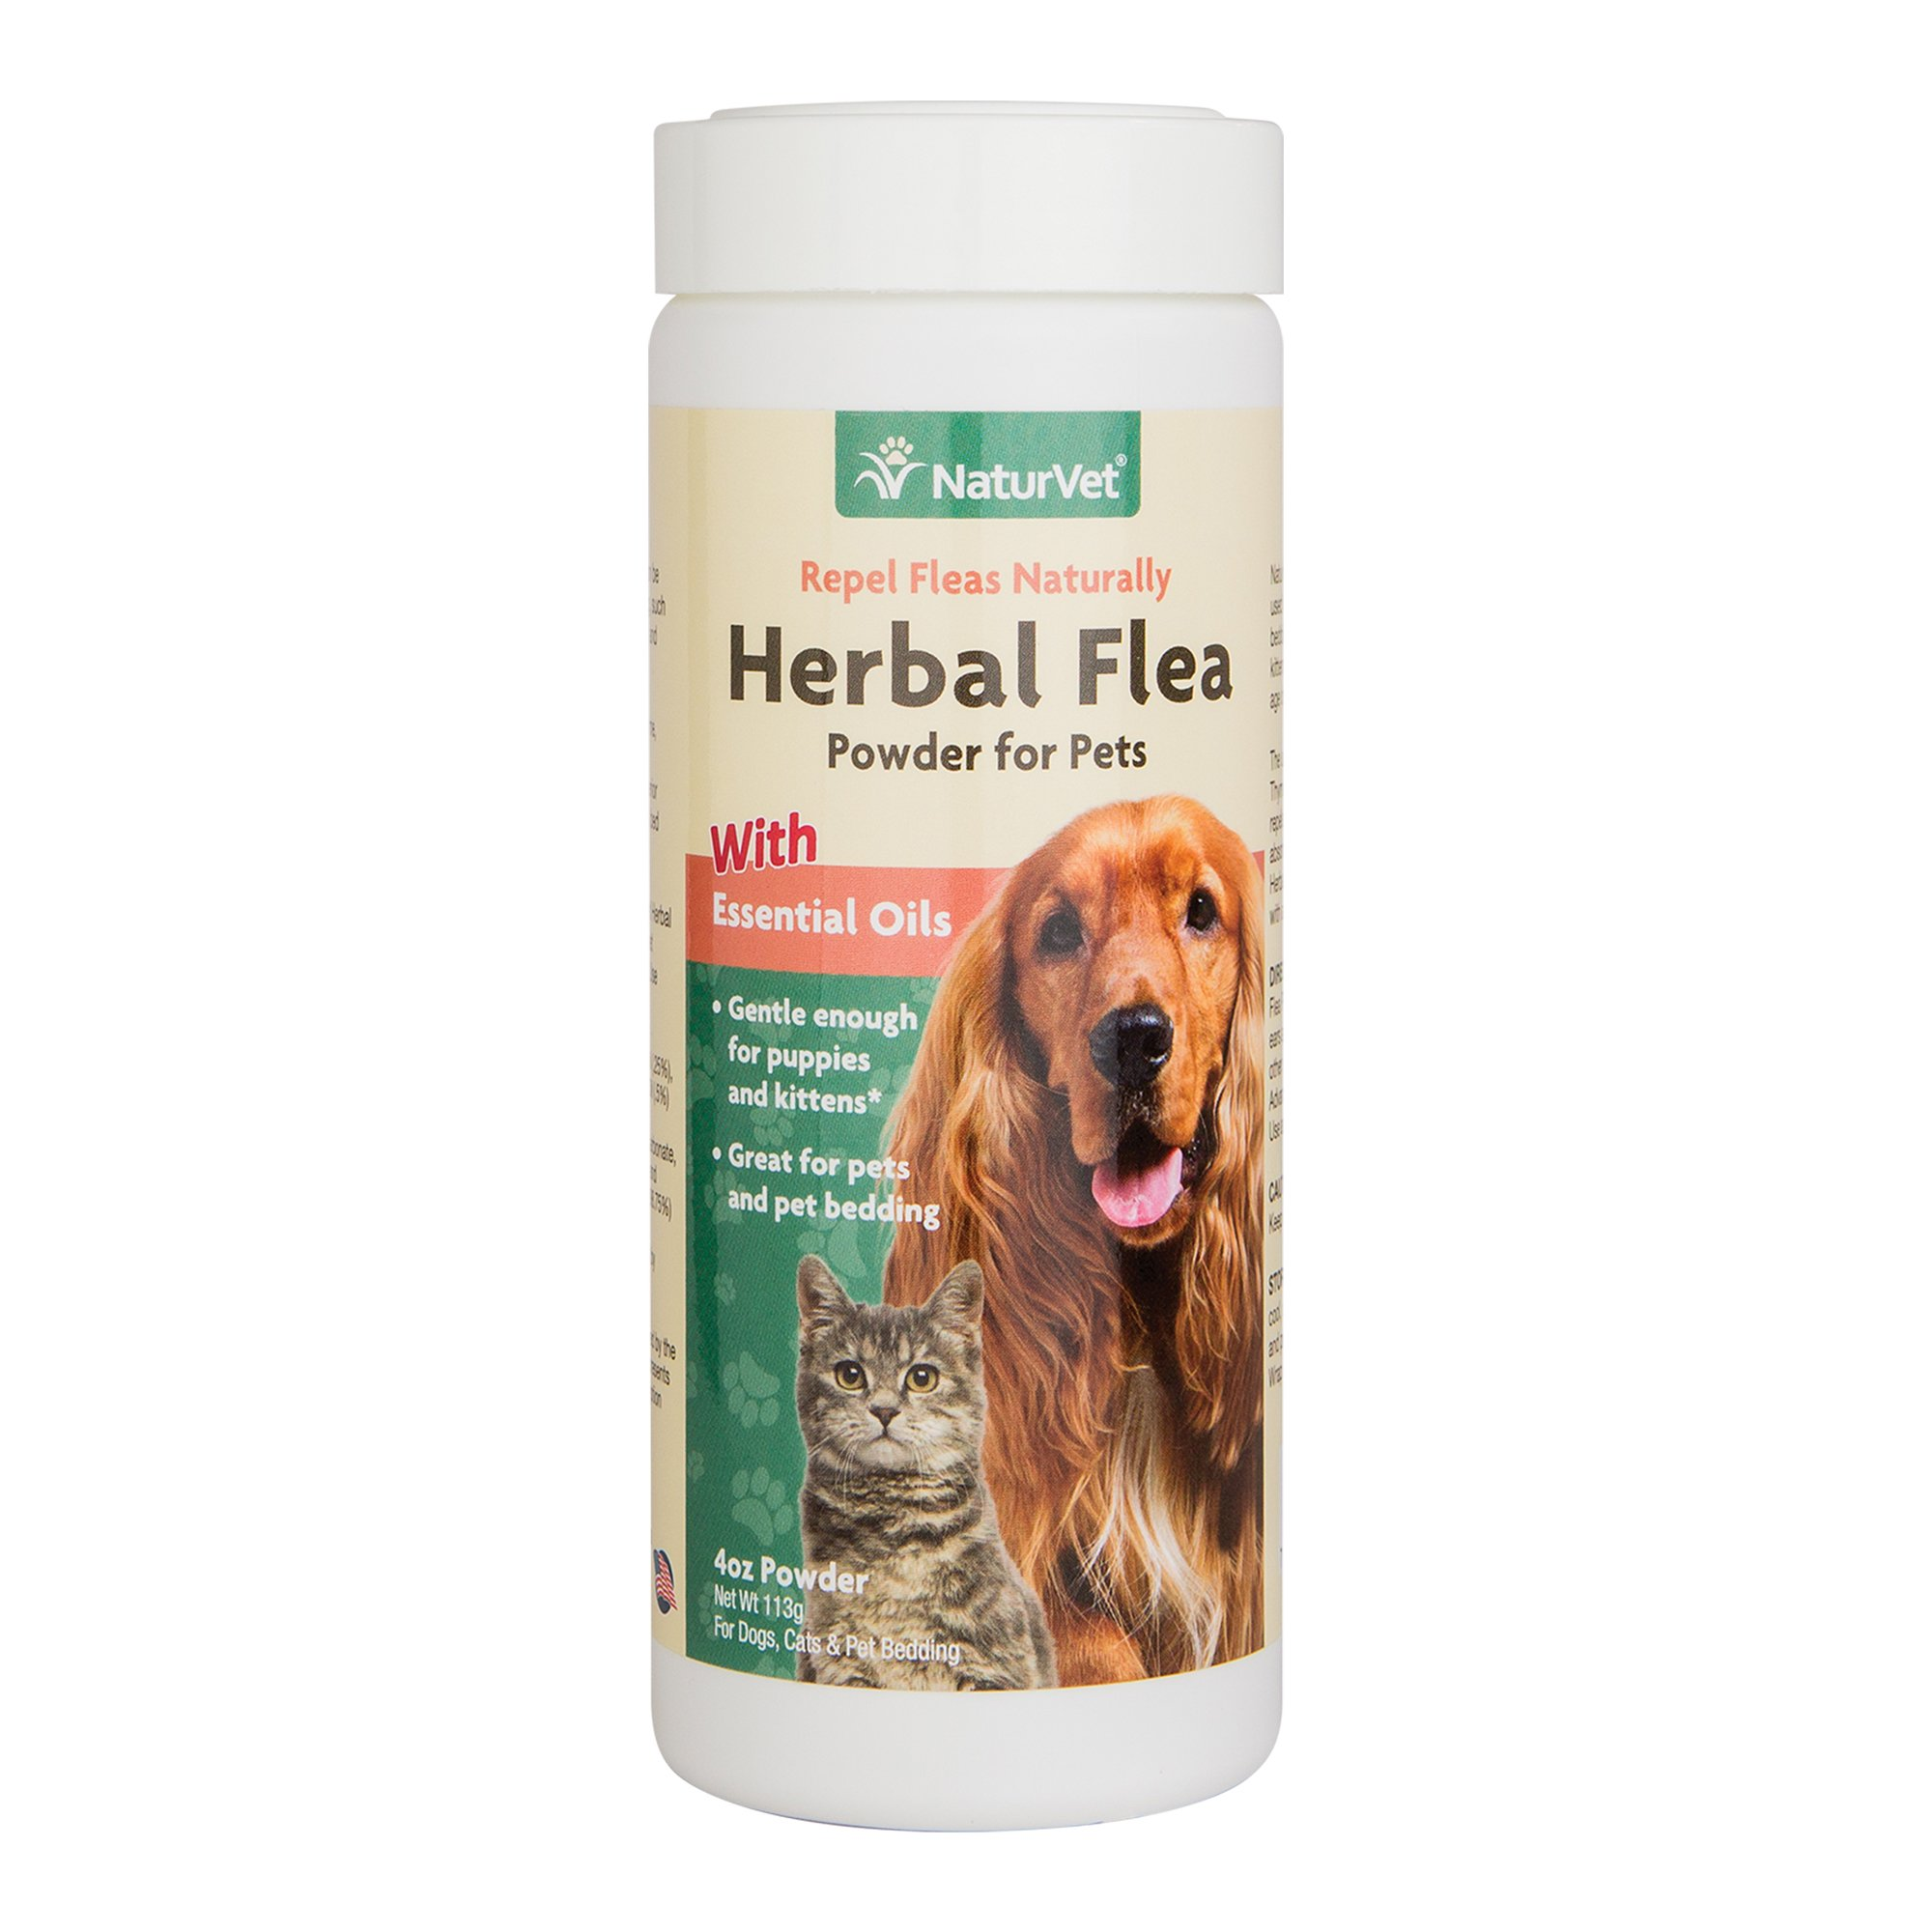 NaturVet Herbal Flea Powder with Essential Oils for Dogs and Cats, 4 oz Powder , Made in USA